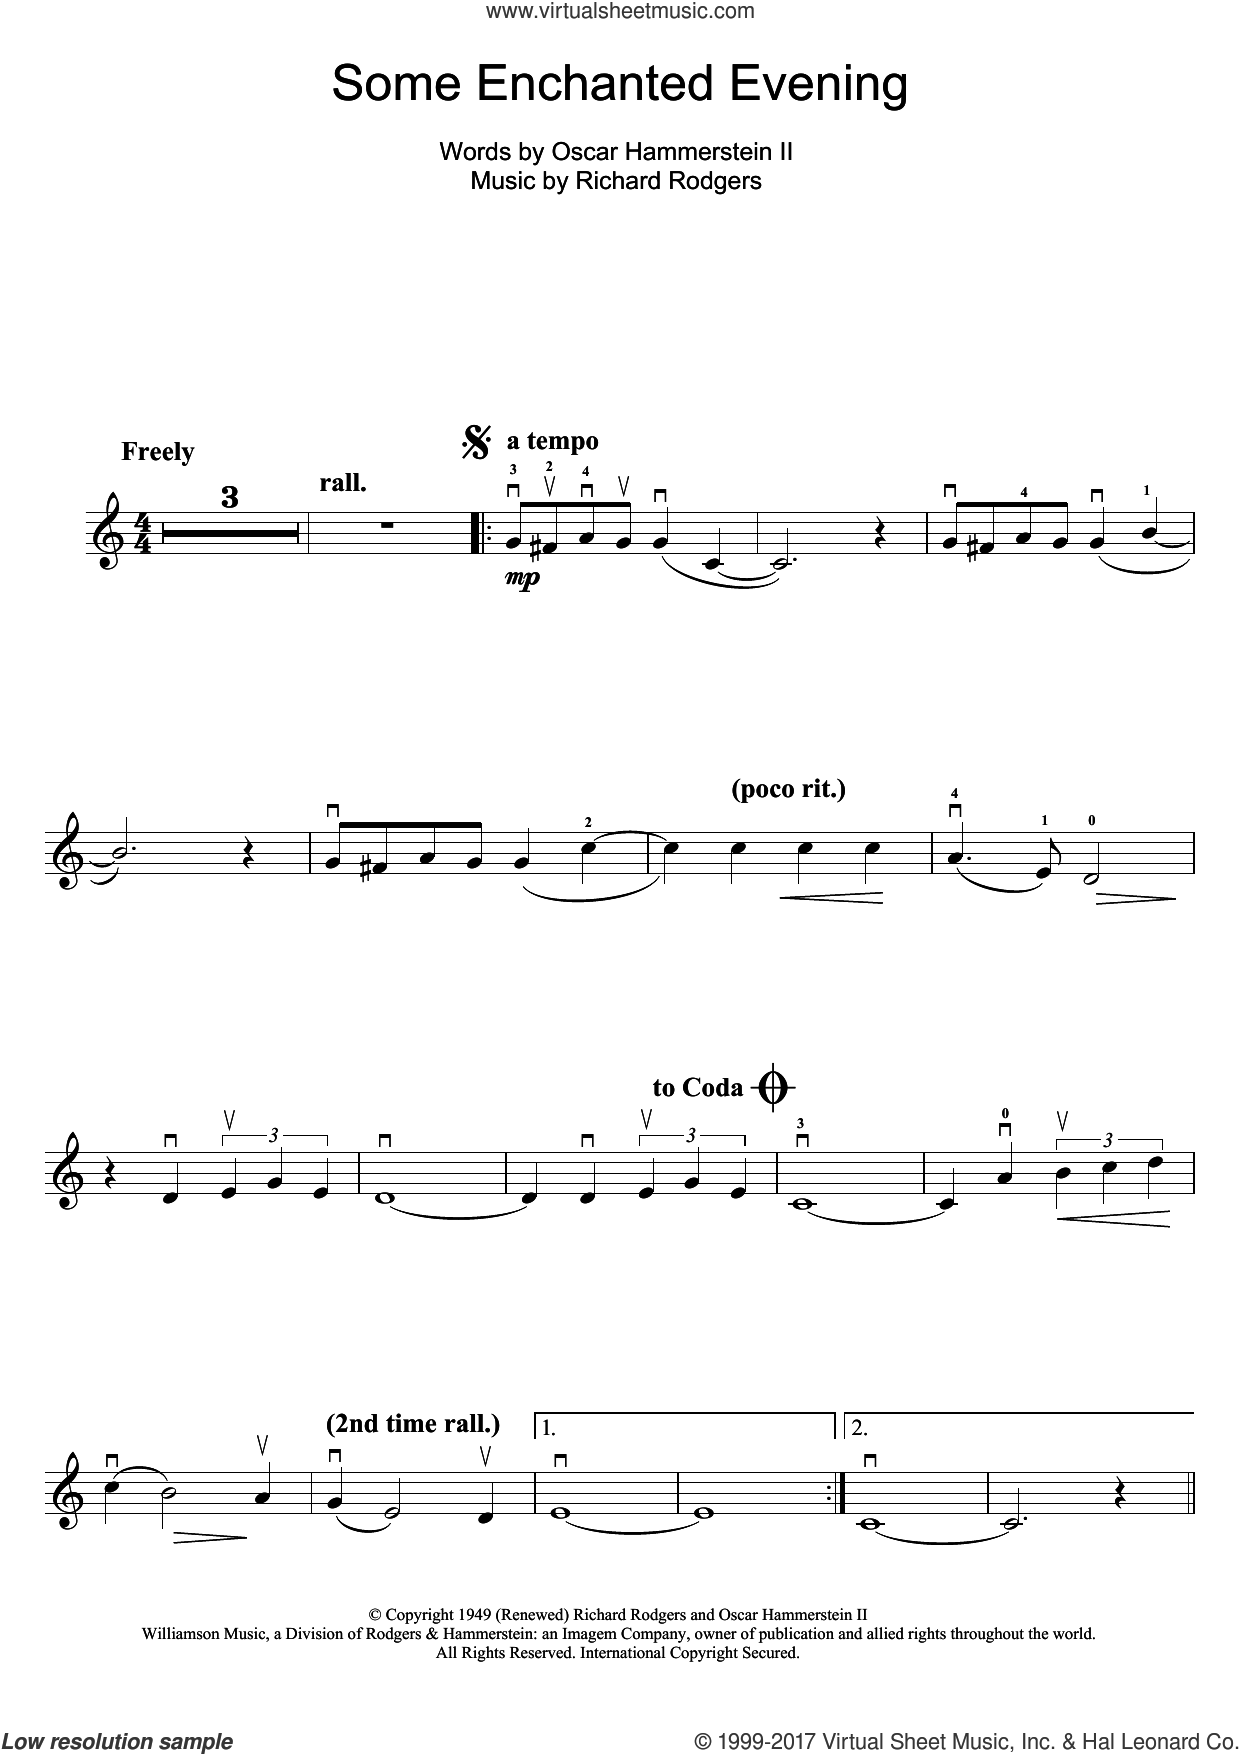 Some Enchanted Evening (from South Pacific) sheet music for violin solo by Rodgers & Hammerstein, Oscar II Hammerstein and Richard Rodgers, intermediate skill level